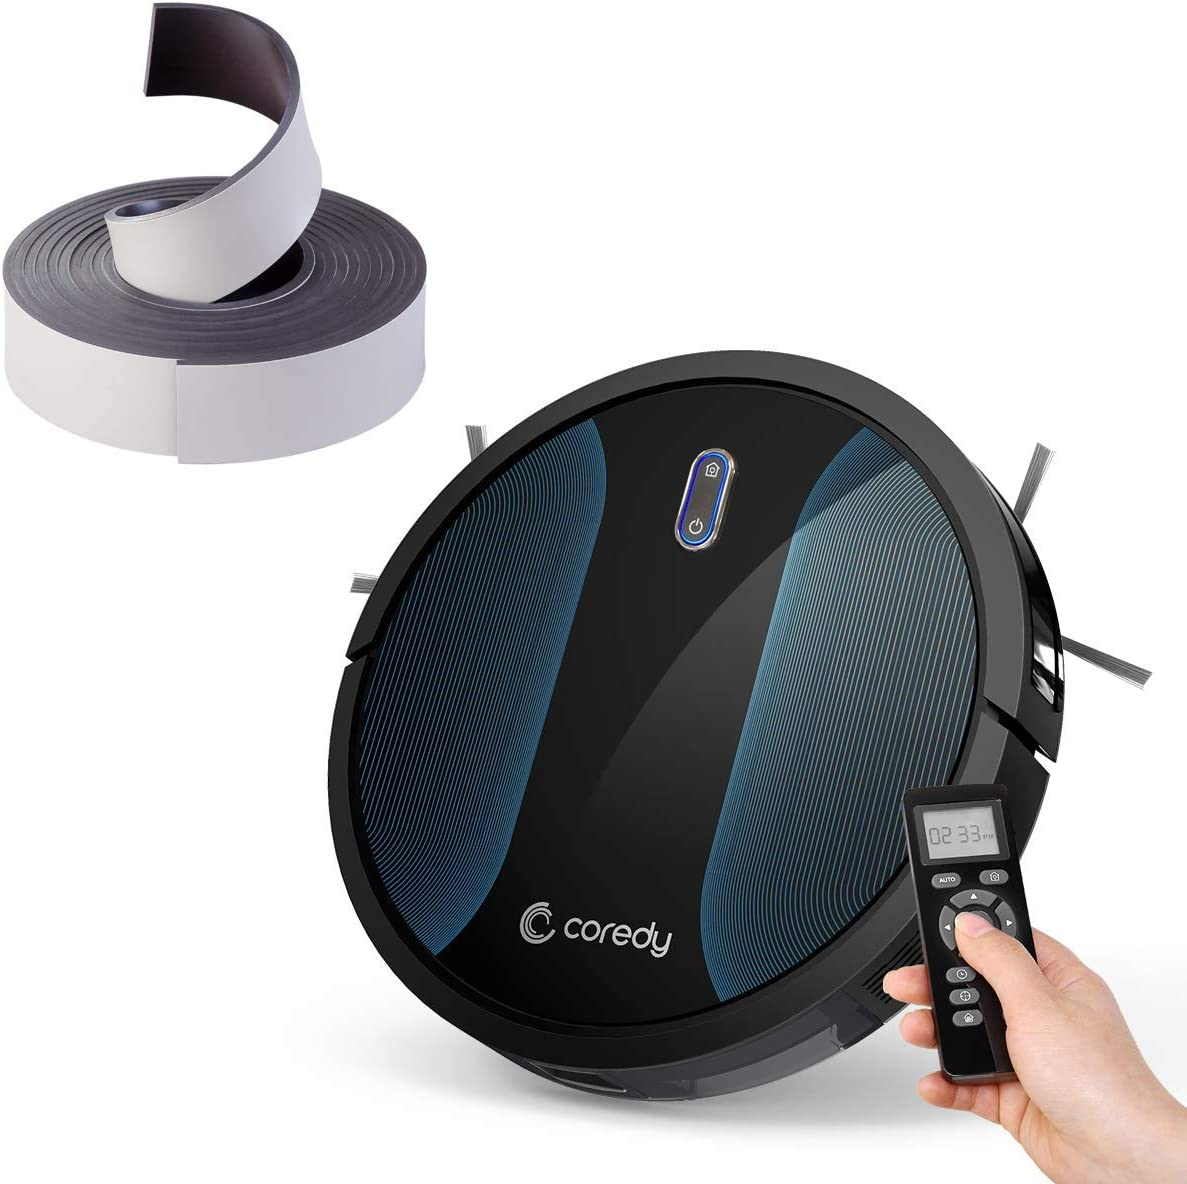 Coredy R550 (R500+) Robot Vacuum Cleaner with Boundary Strip